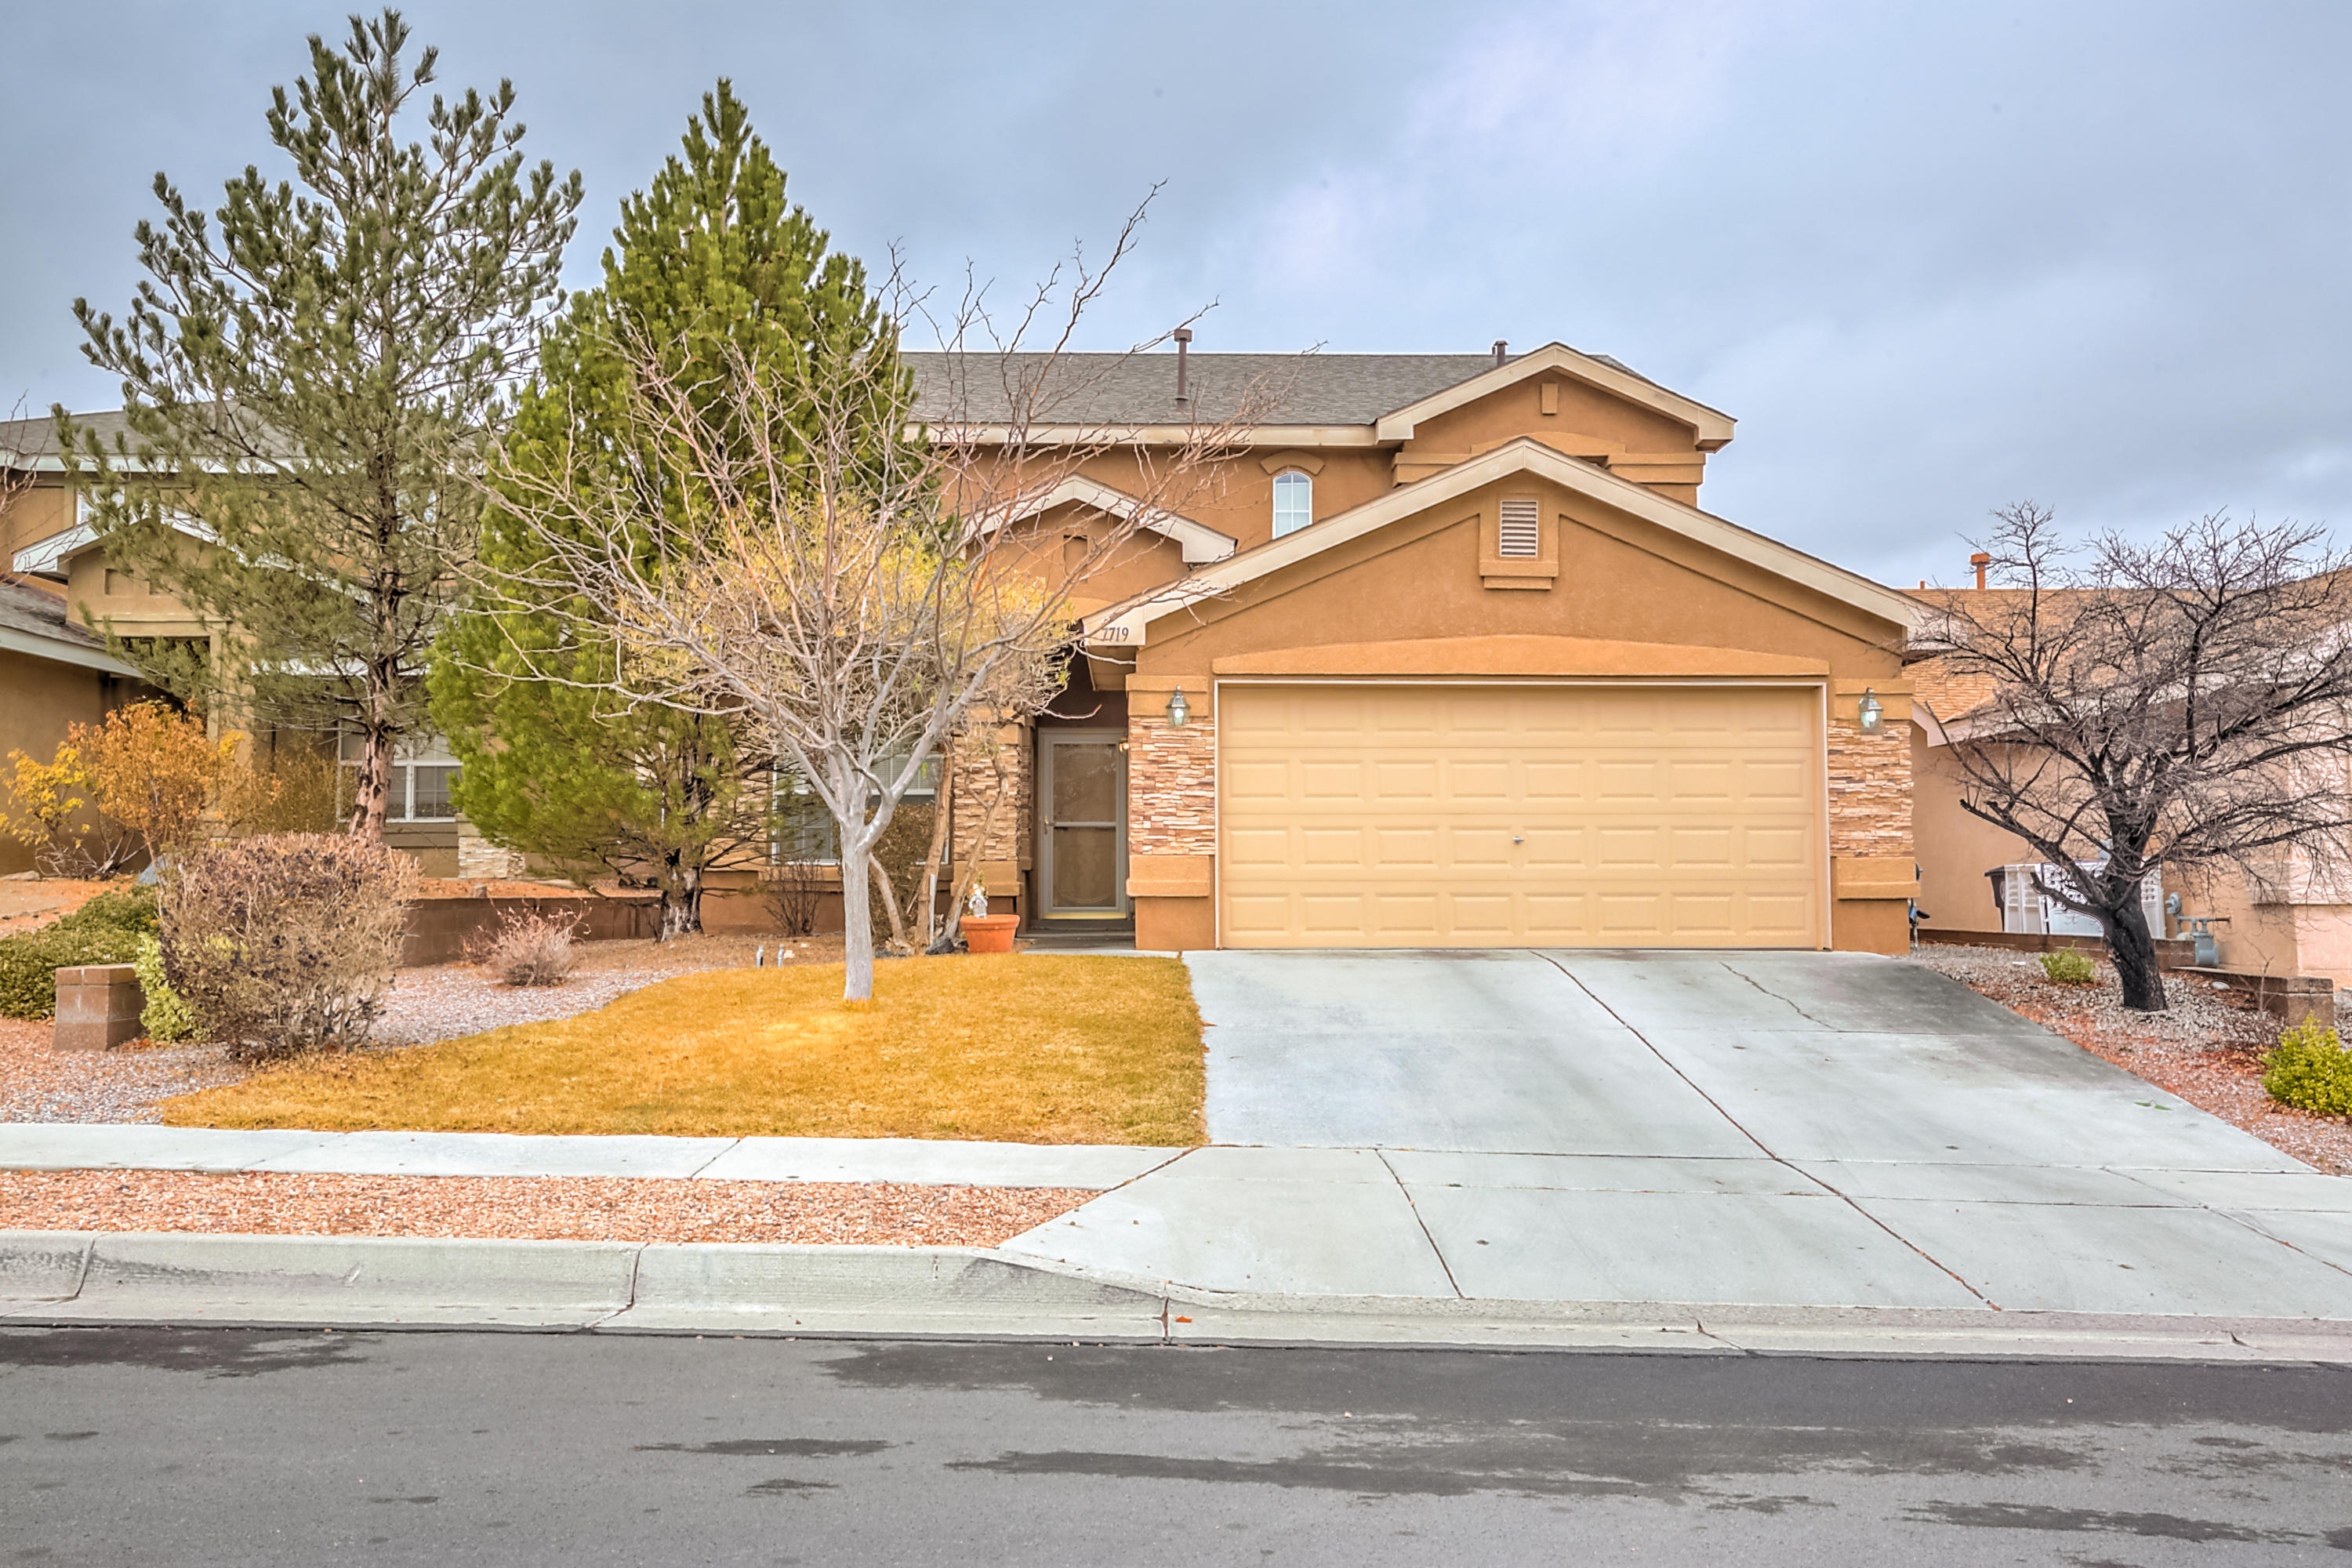 7719 Red Finch Court NW Albuquerque Home Listings - RE/MAX Elite Albuquerque Real Estate